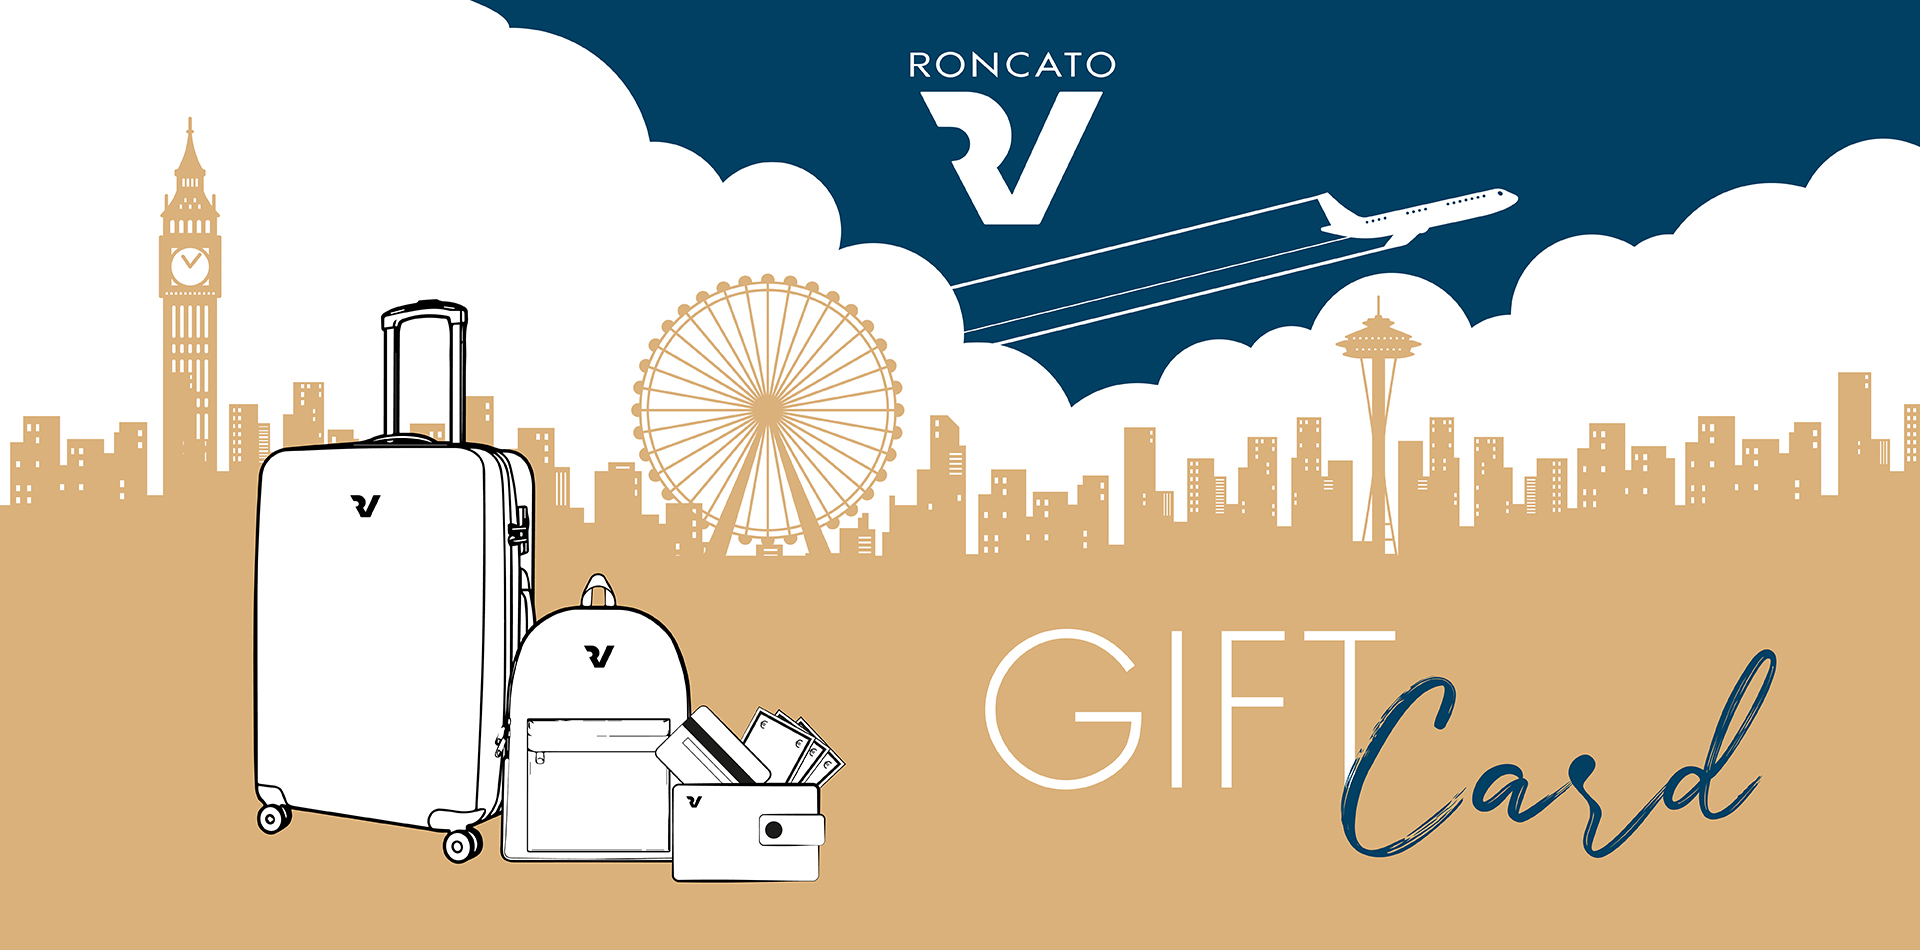 roncato gift card